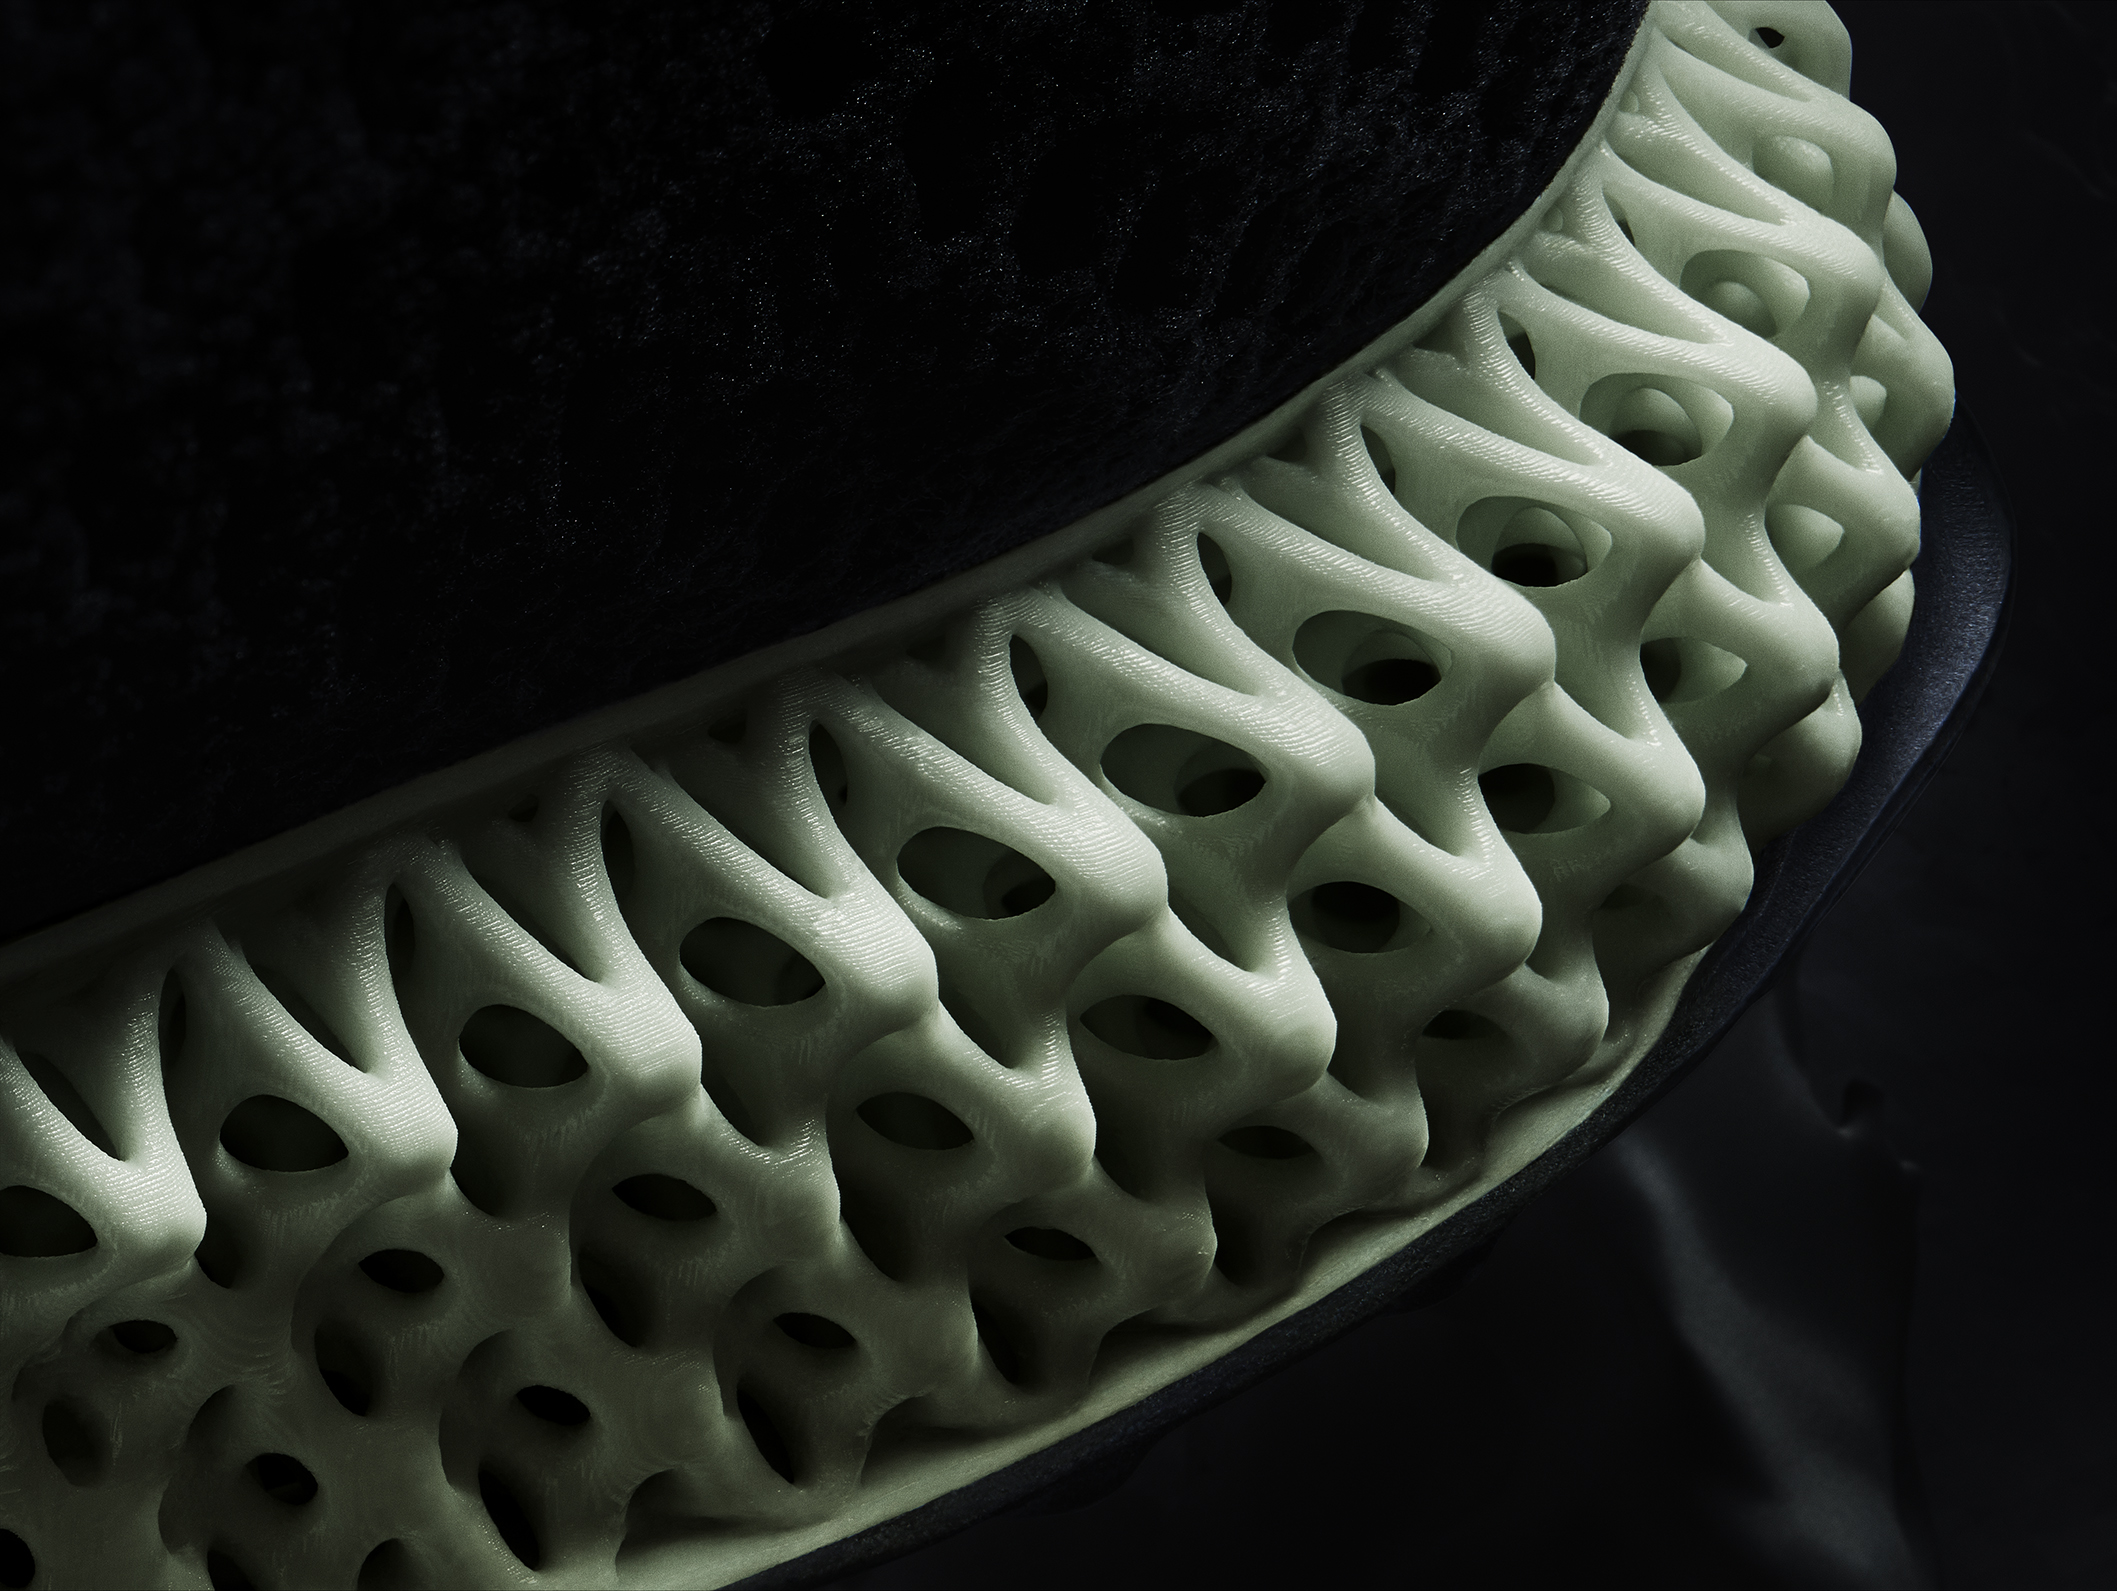 cdec82c89a5c ... france adidas reveals the first 3d printed shoe itll mass produce the  verge d9156 ed9b3